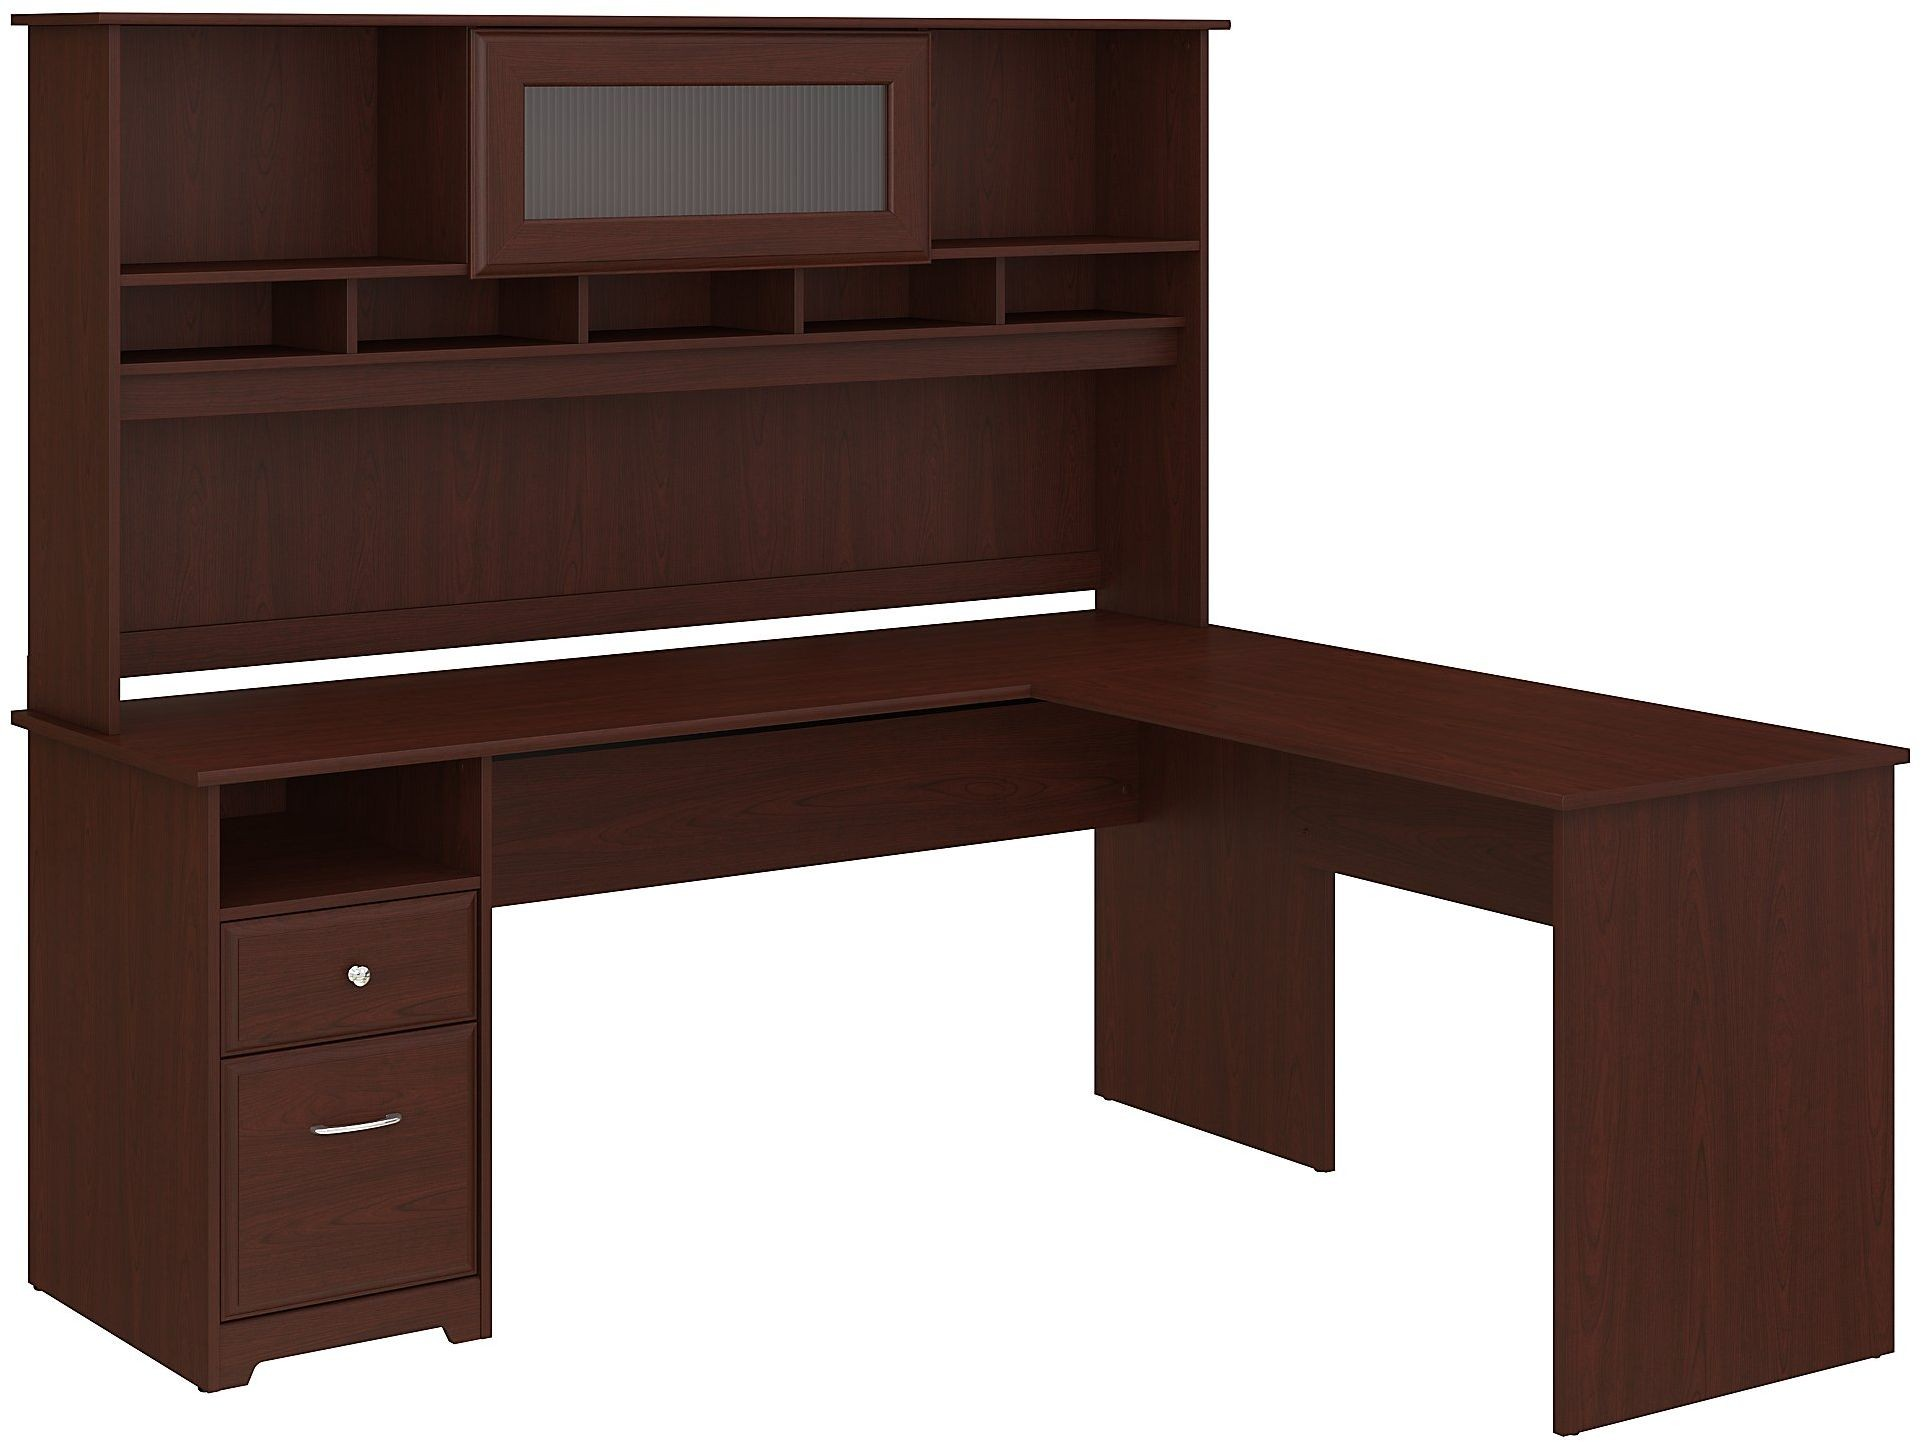 Cabot Harvest Cherry Computer Desk With Hutch From Bush